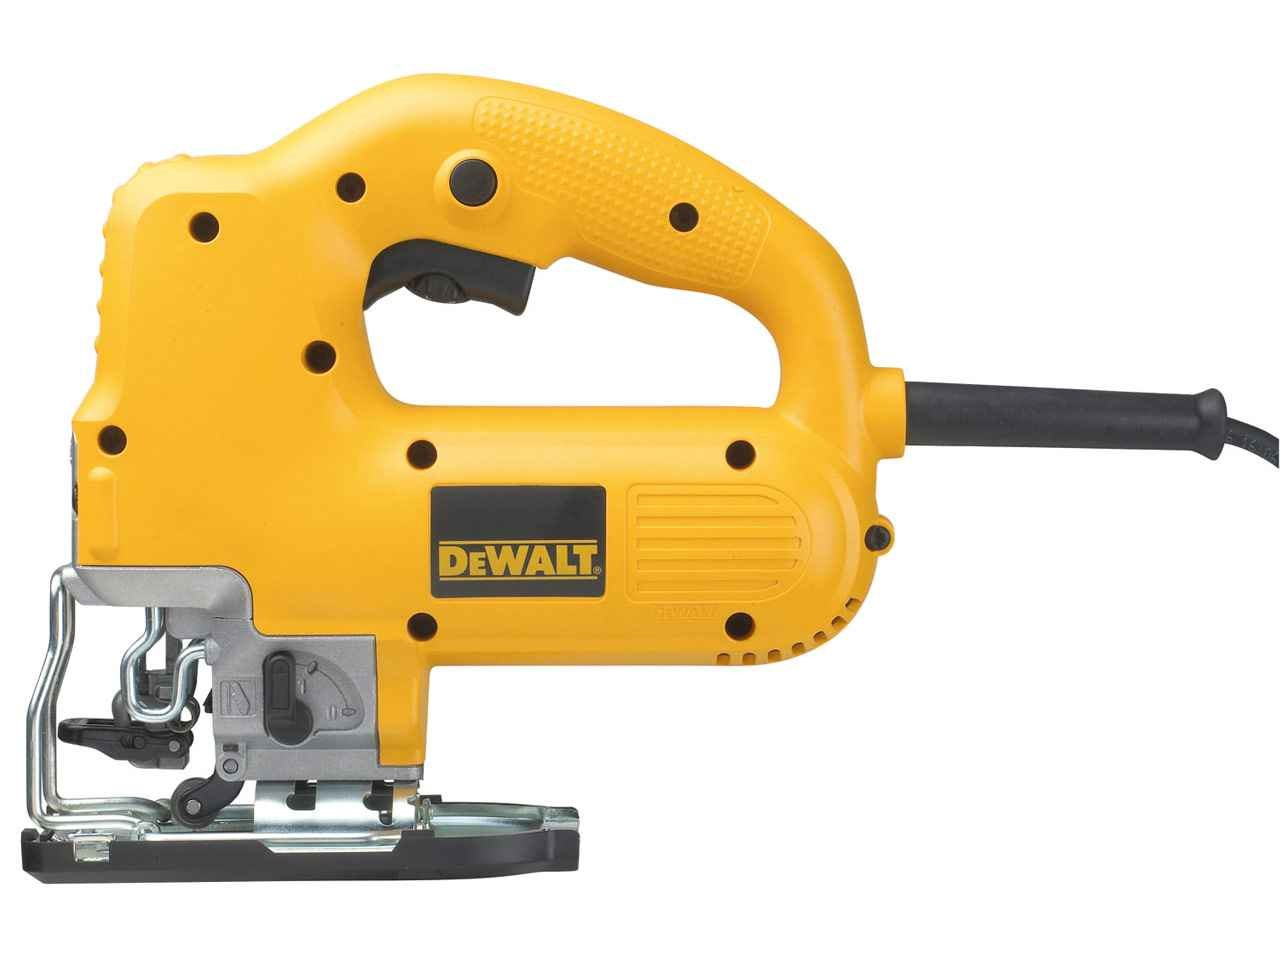 Dewalt dw341k 240v compact top handle jigsaw 550w greentooth Images